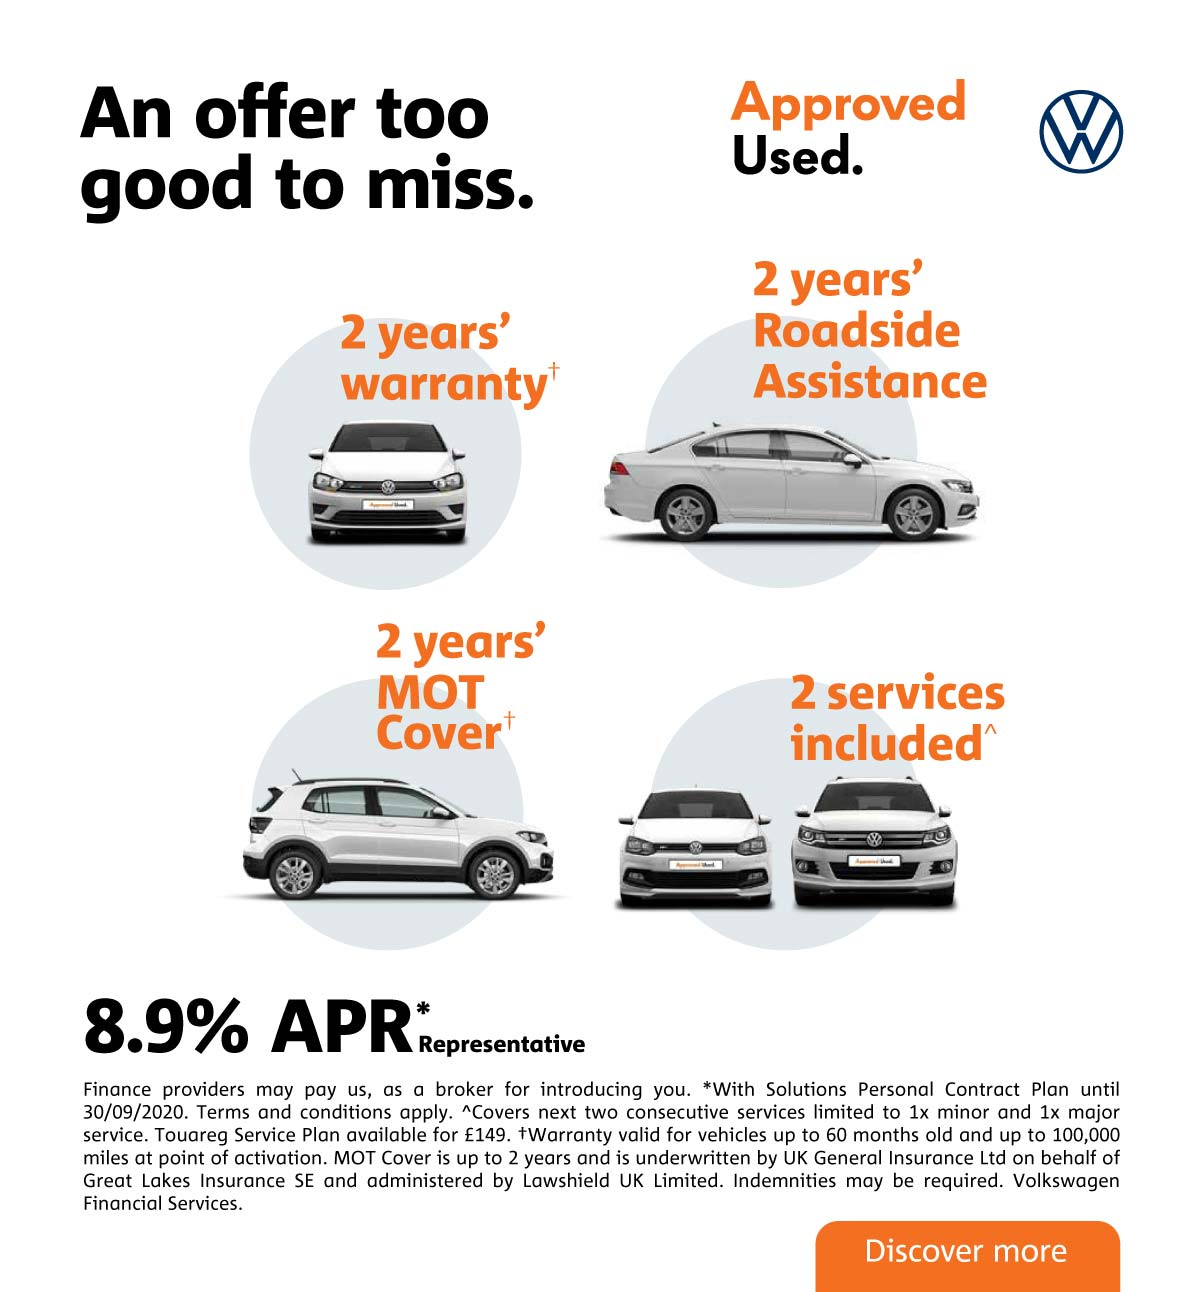 volkswagen Approved Used Tile September 2020